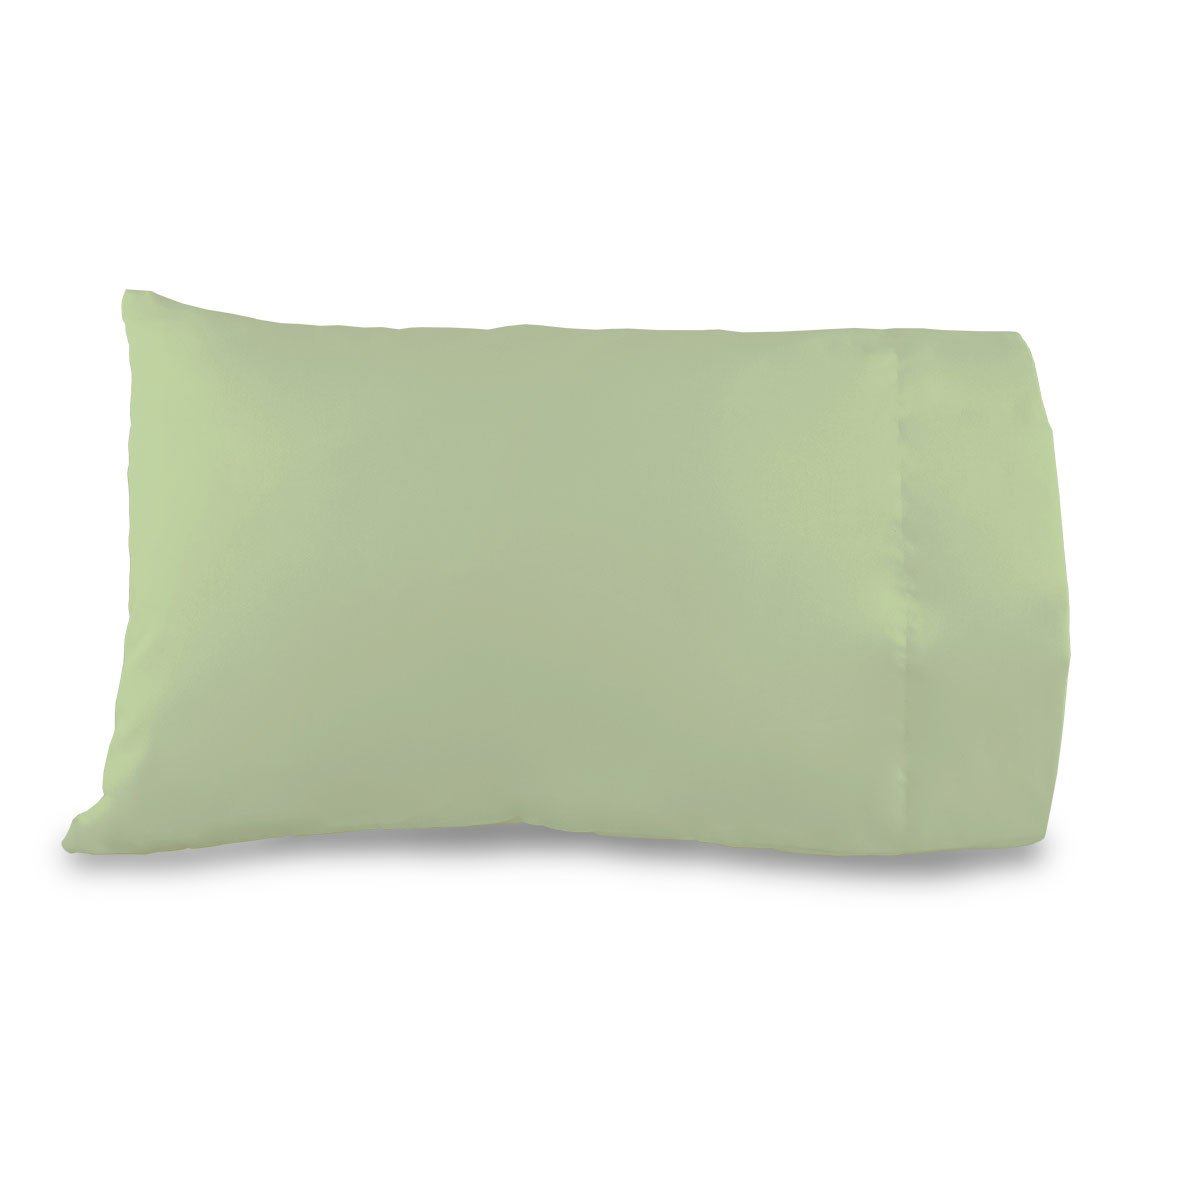 AB Lifestyles 12x18 Pillowcase Travel size Toddler size Fits My Pillow Travel pillow perfectly! 100% cotton Color Sage Green